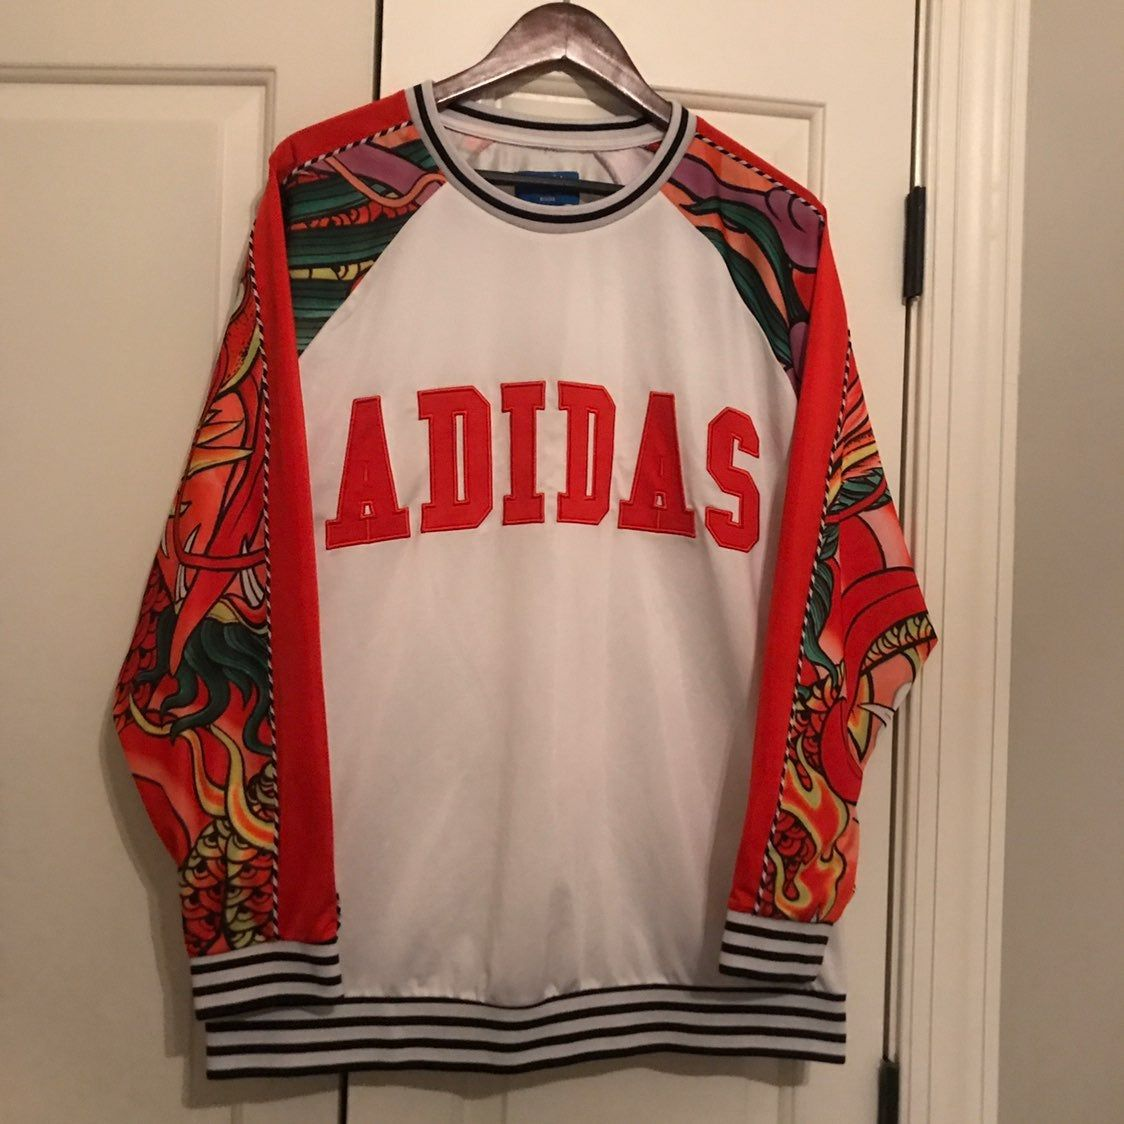 Size Xl Has A Few Snags Pinholes And Minor Spots See Pics But Nothing Too Obvious Adidas Crew Neck Swe Adidas Crew Neck Crew Neck Sweatshirt Dragon Print [ 1124 x 1124 Pixel ]